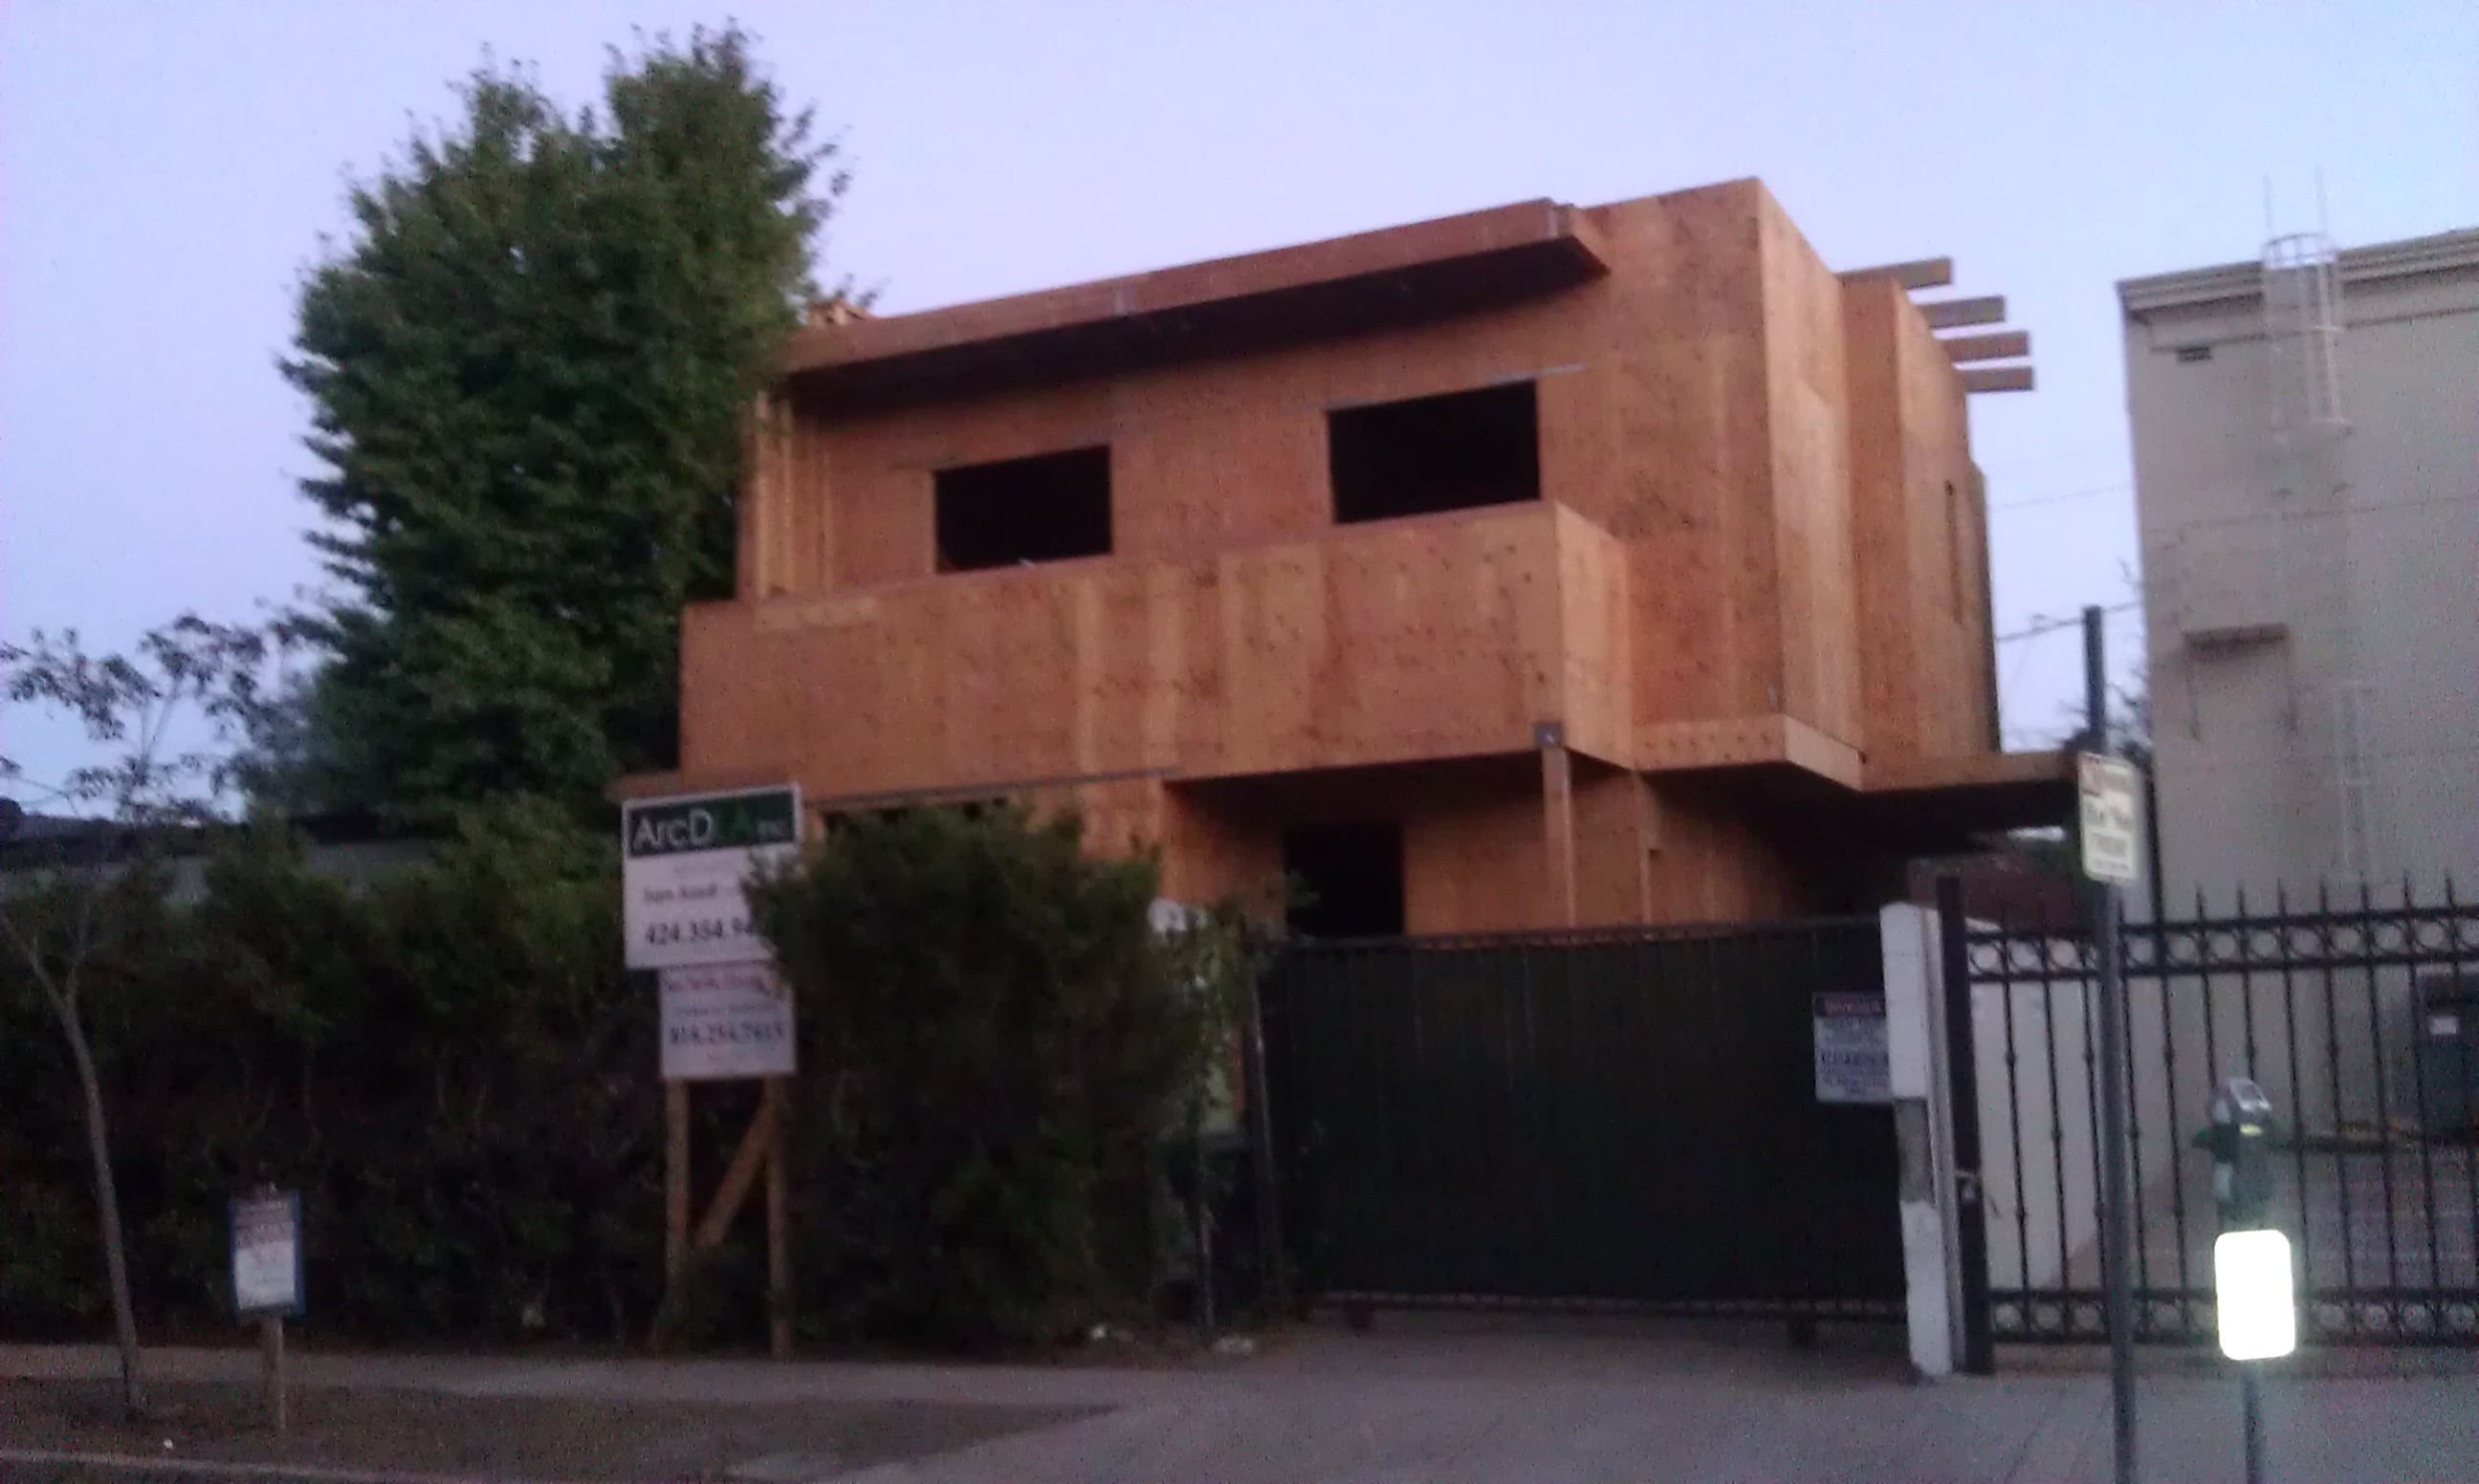 Cool Weho West Neighbors Were Being Invaded By Boxy Home Clones Interior Design Ideas Helimdqseriescom